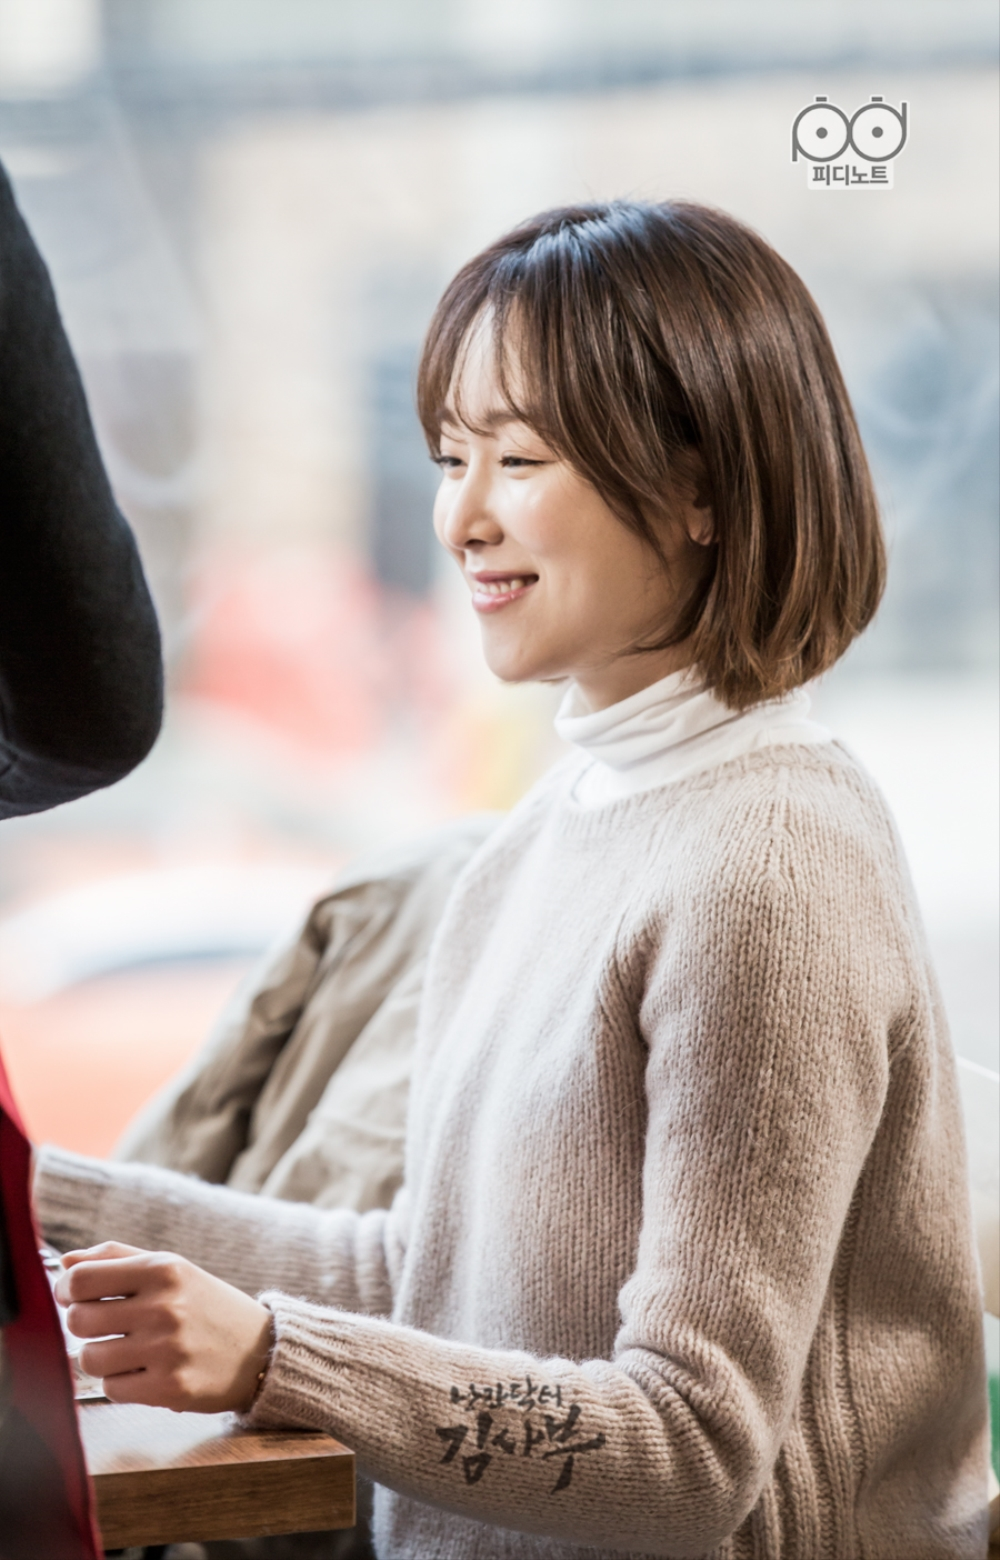 Lovely Seo-jeong shows her biggest smile when she sees the divine pizza